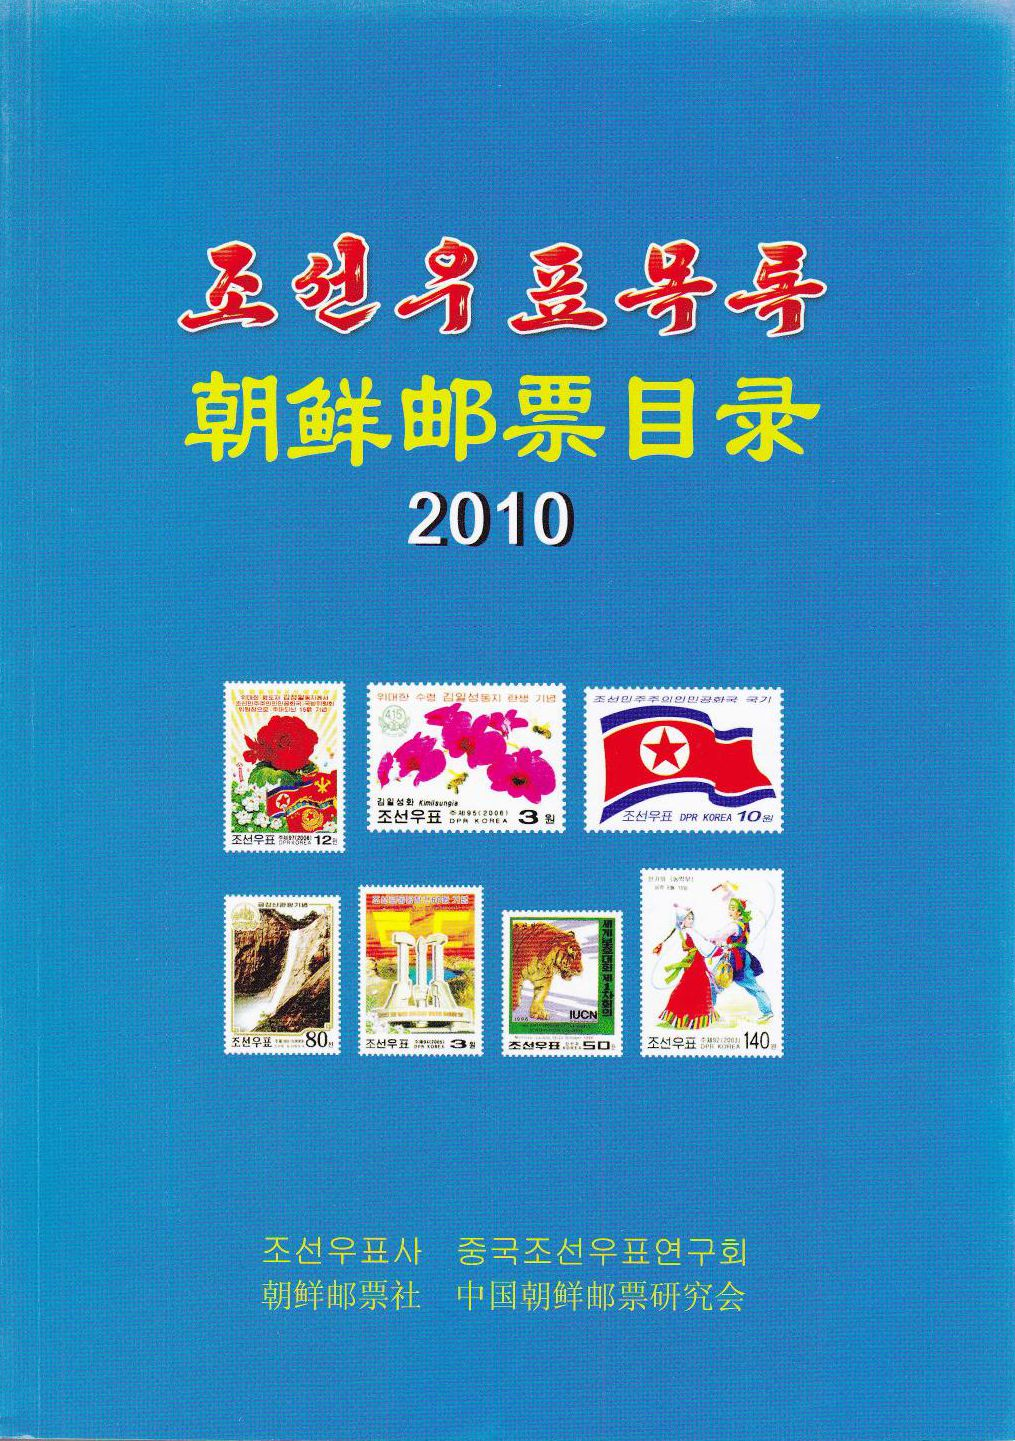 F2270, Official Korea Stamp Catalog, 2010